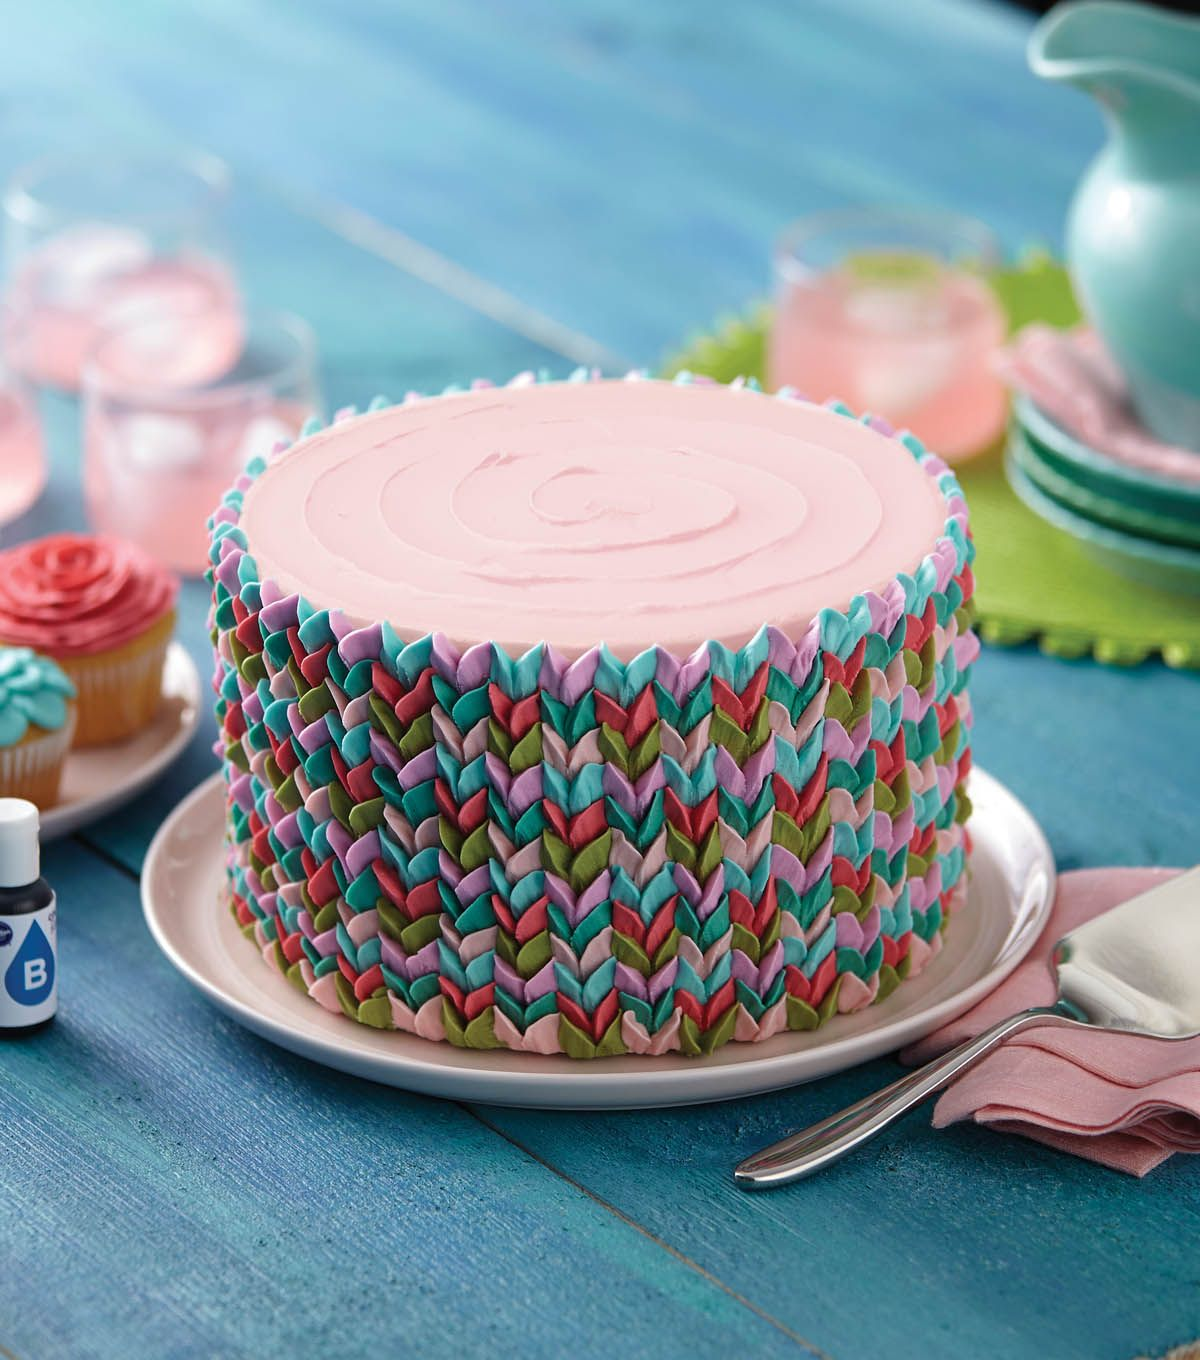 Learn Make Beautiful And Bright Cake